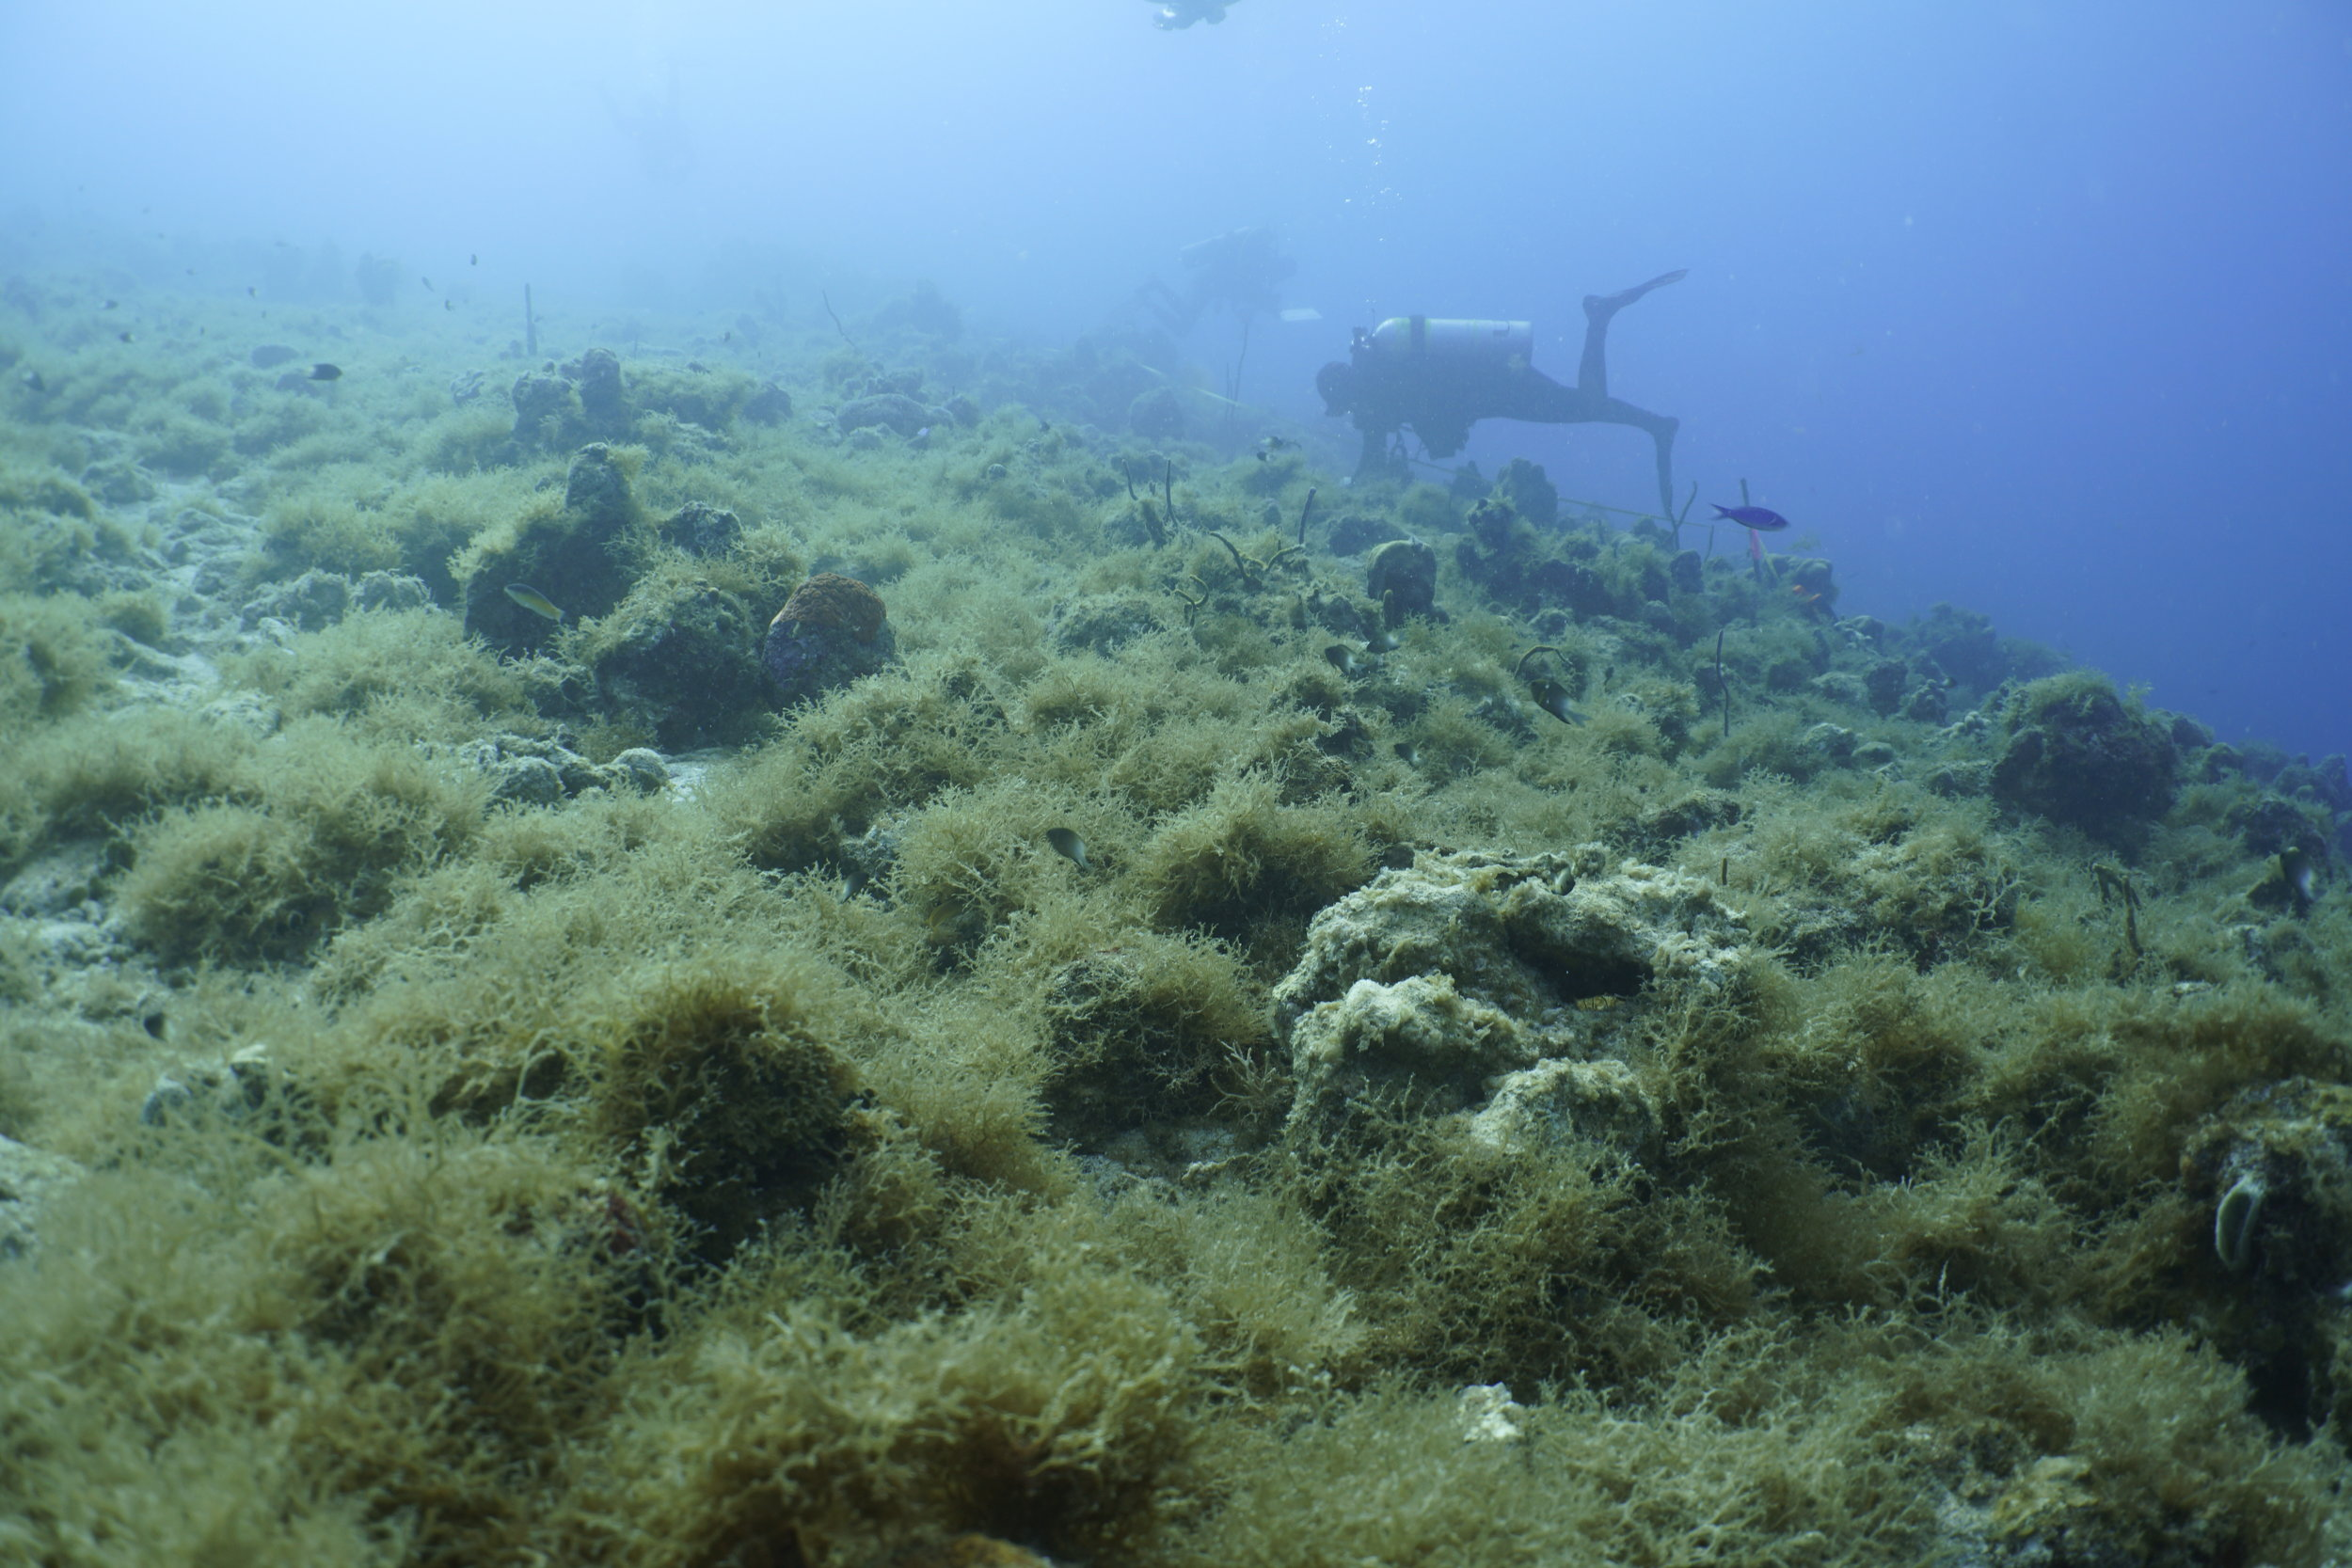 Brown fleshy seaweeds, which are an indicator of excessive nutrients and sediments, are currently overly abundant on St. Thomas reefs, possibly due to too much runoff. This project will document how these seaweeds and other organisms like sponges change through time and what will be their effect on the recovery of corals on the reef.